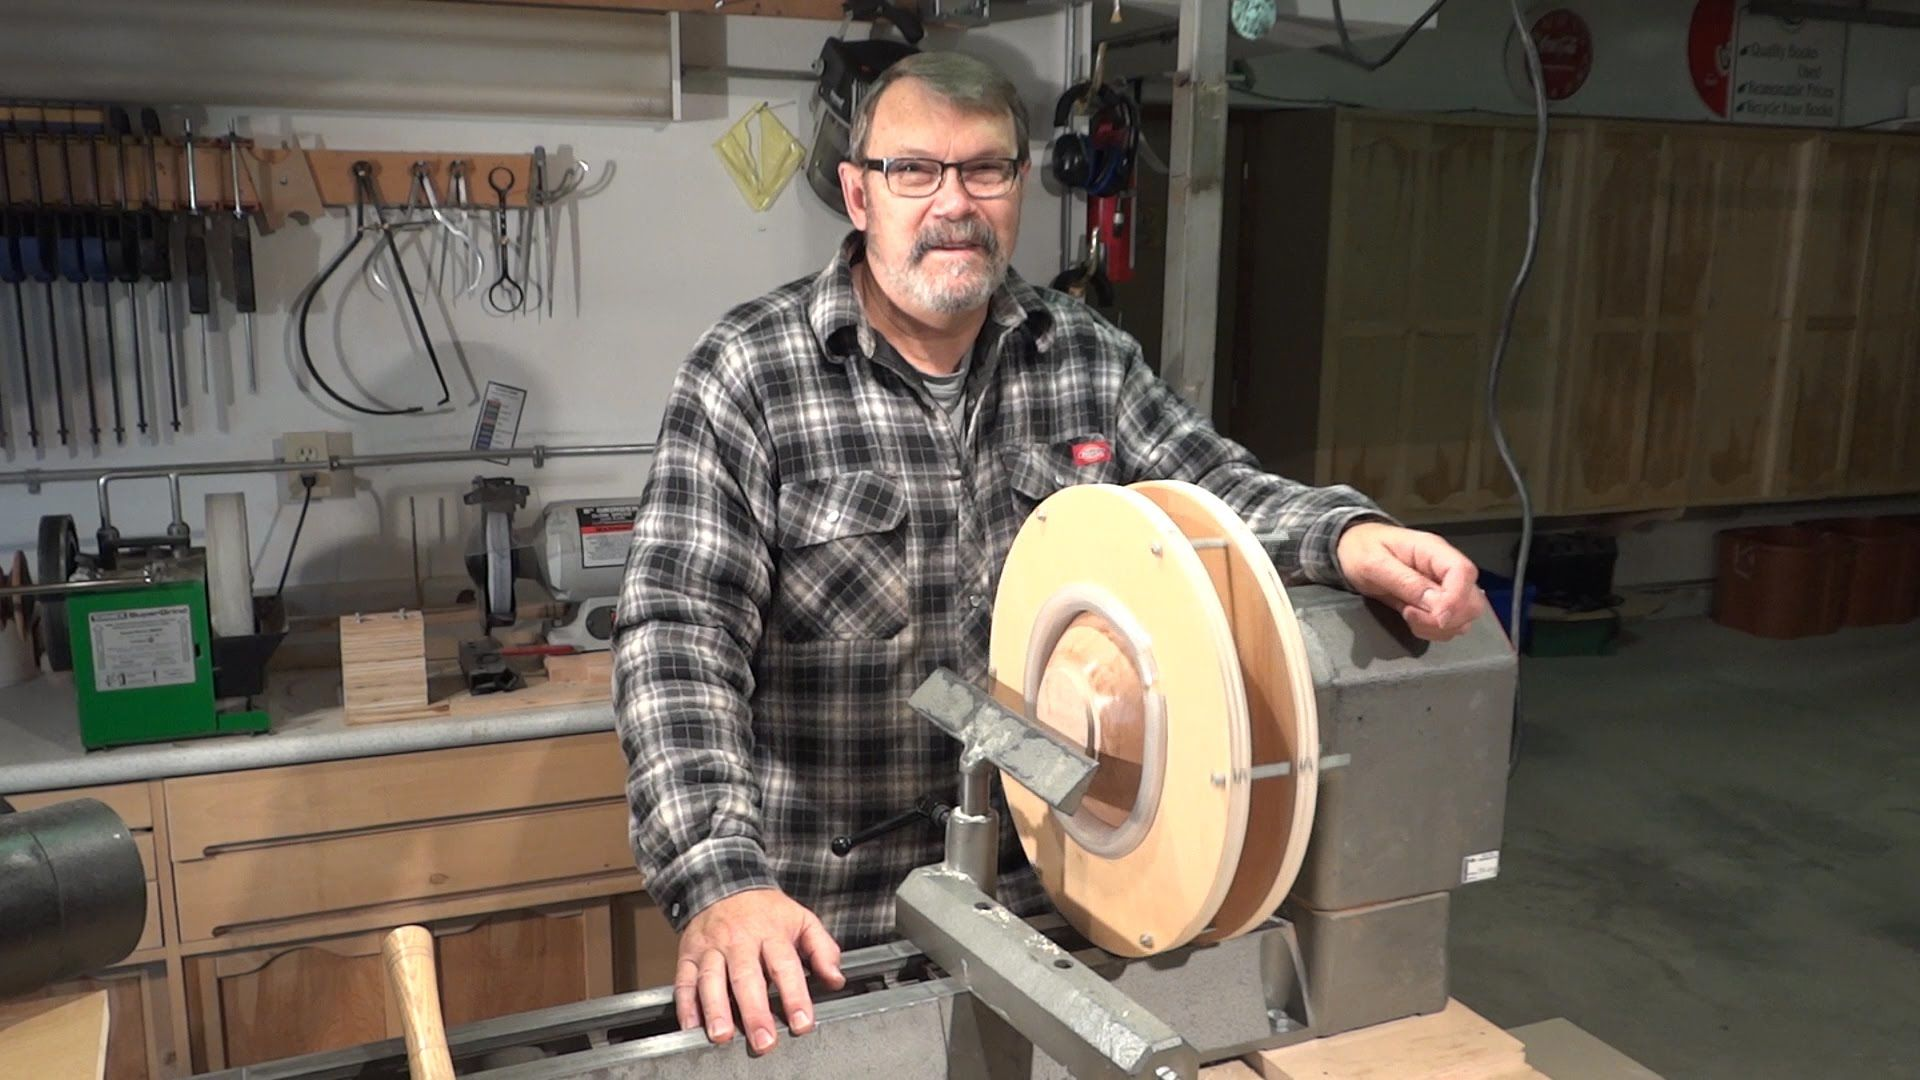 A Short Video To Show How To Build A Donut Chuck For